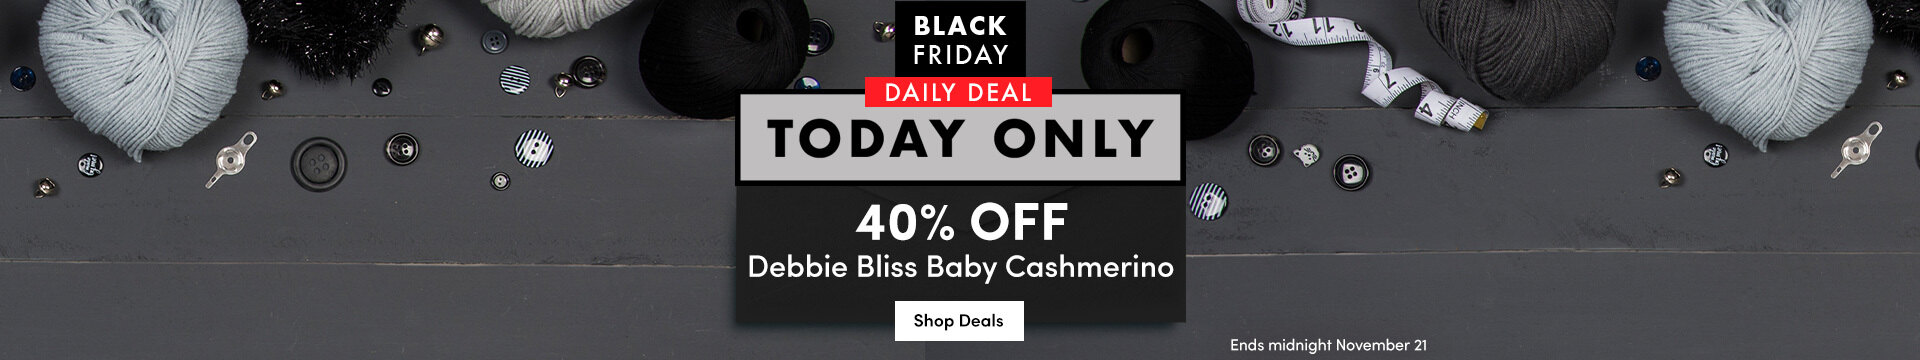 LK Marketing - NA Daily Deal Debbie Bliss